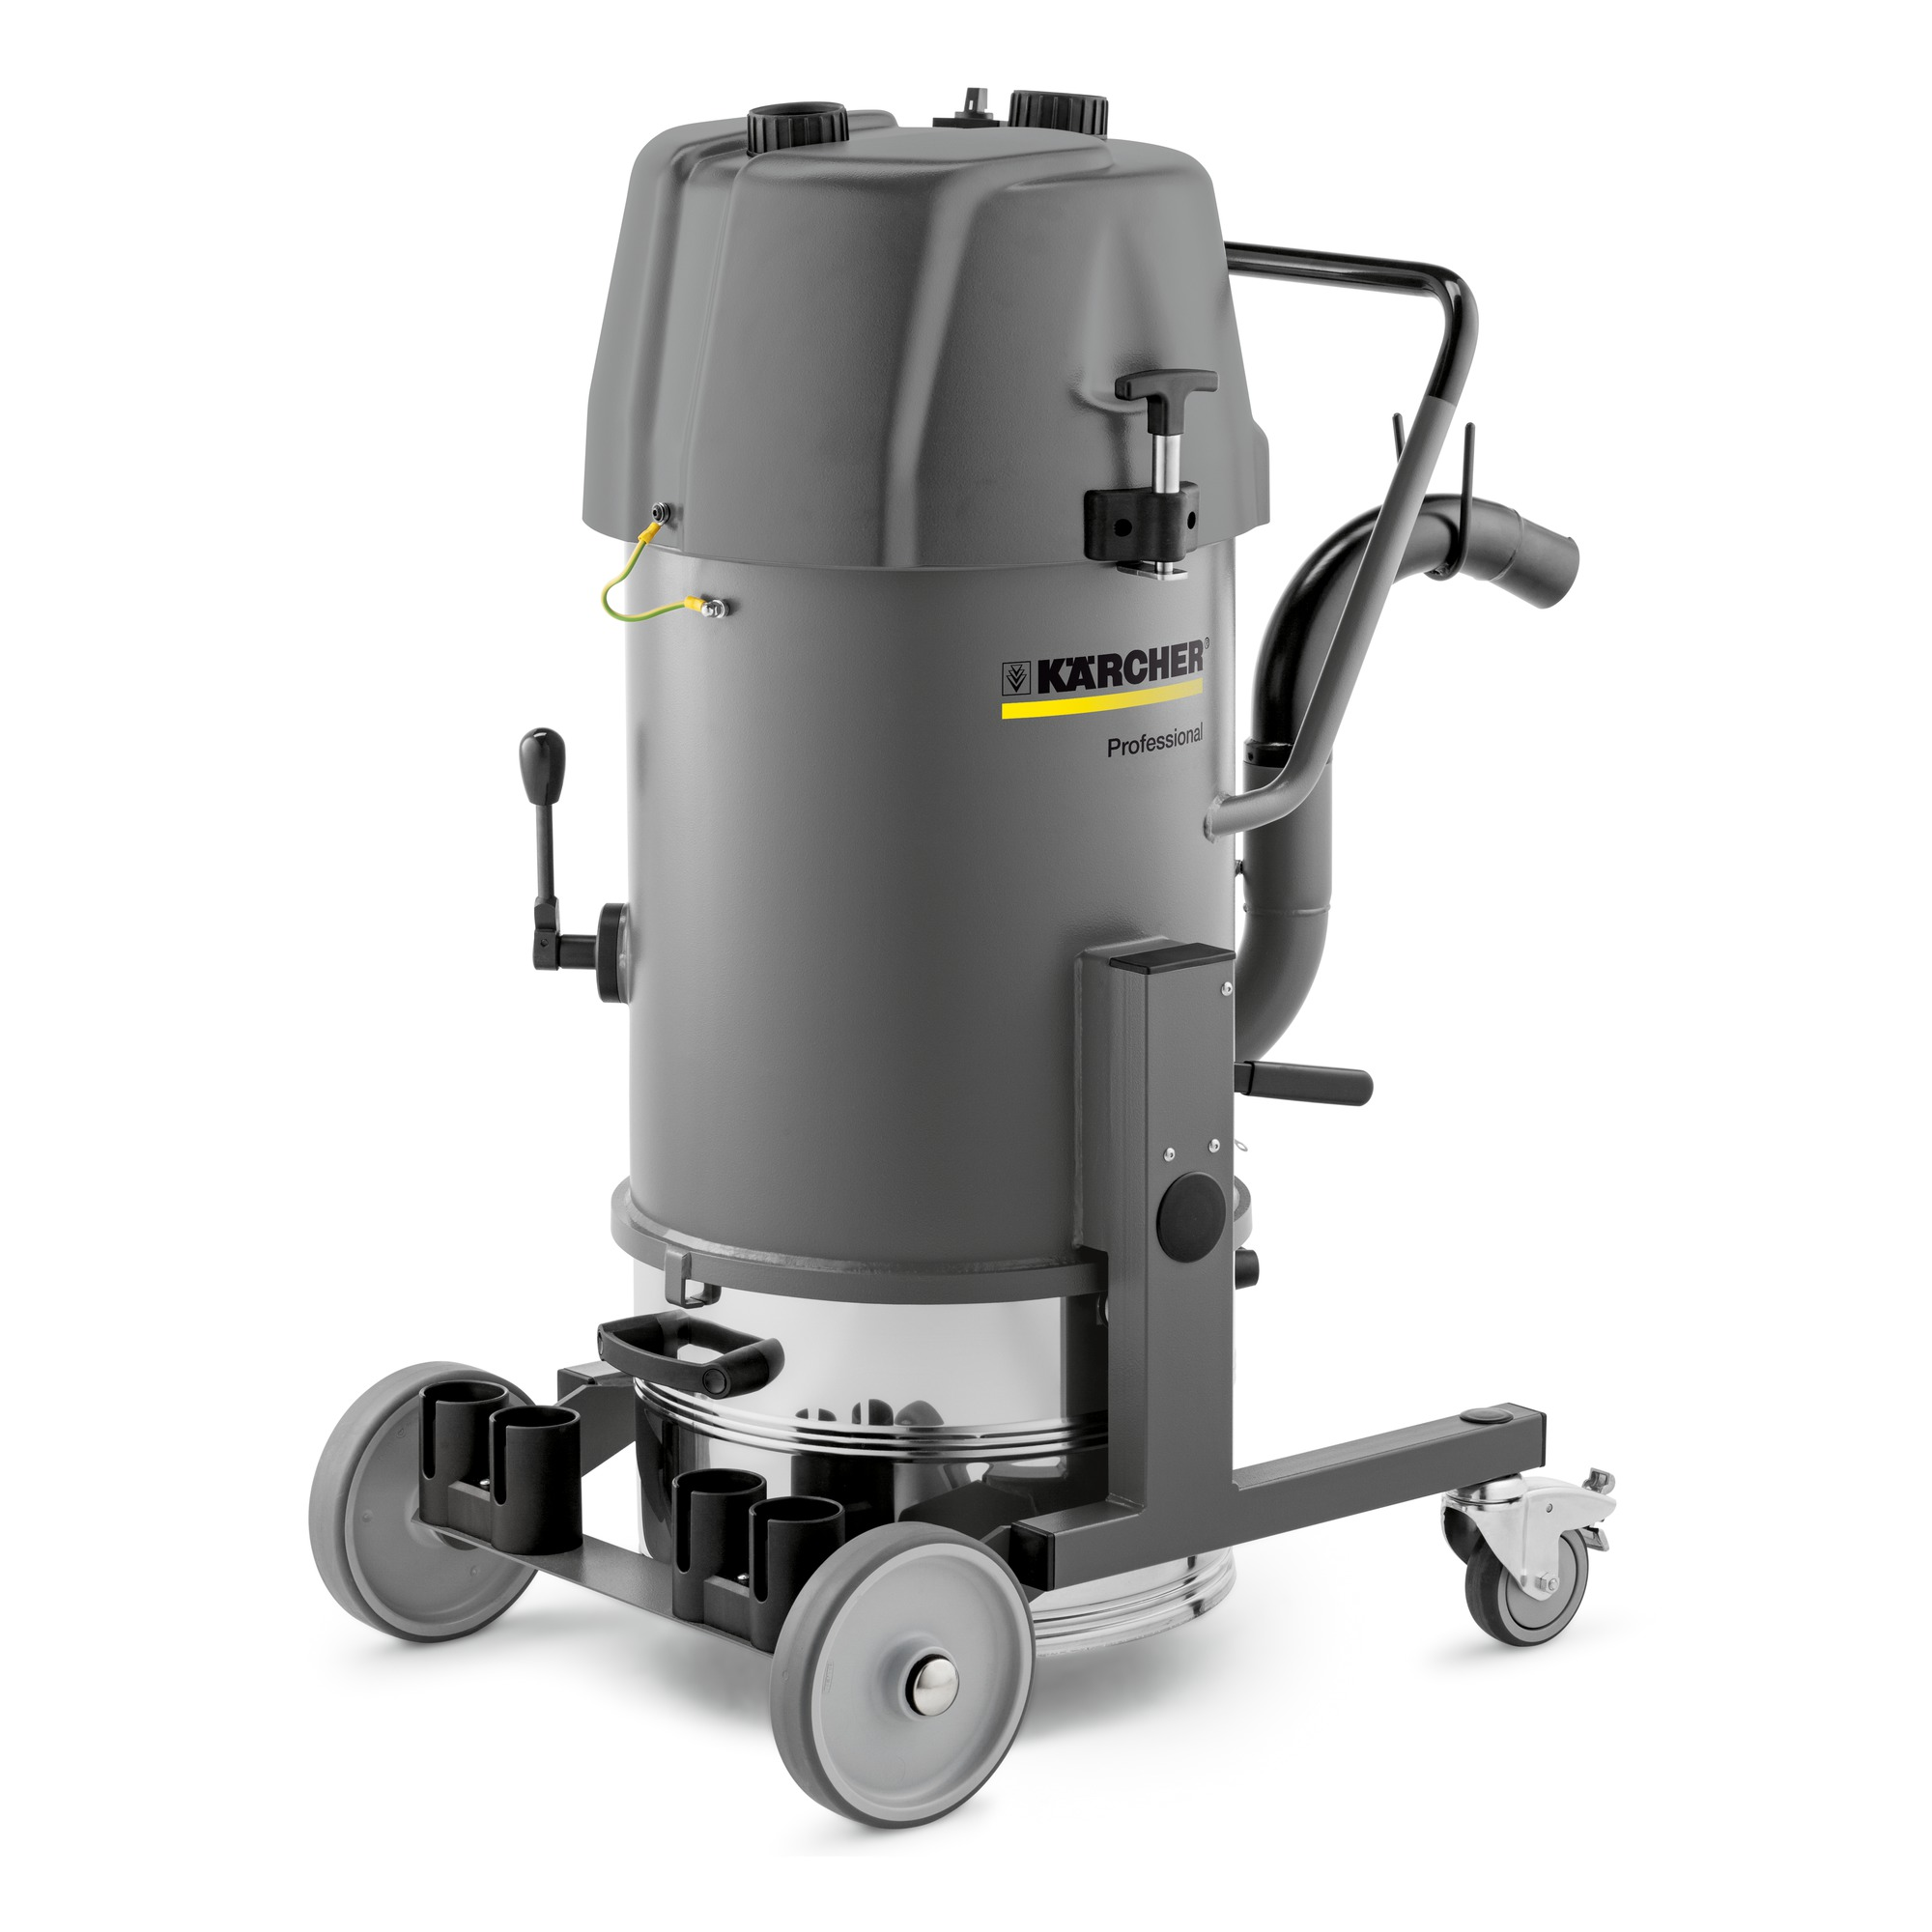 IVR 35/20-2 Pf Me 9.986-065.0 KARCHER - KARCHER PREMIER CENTER